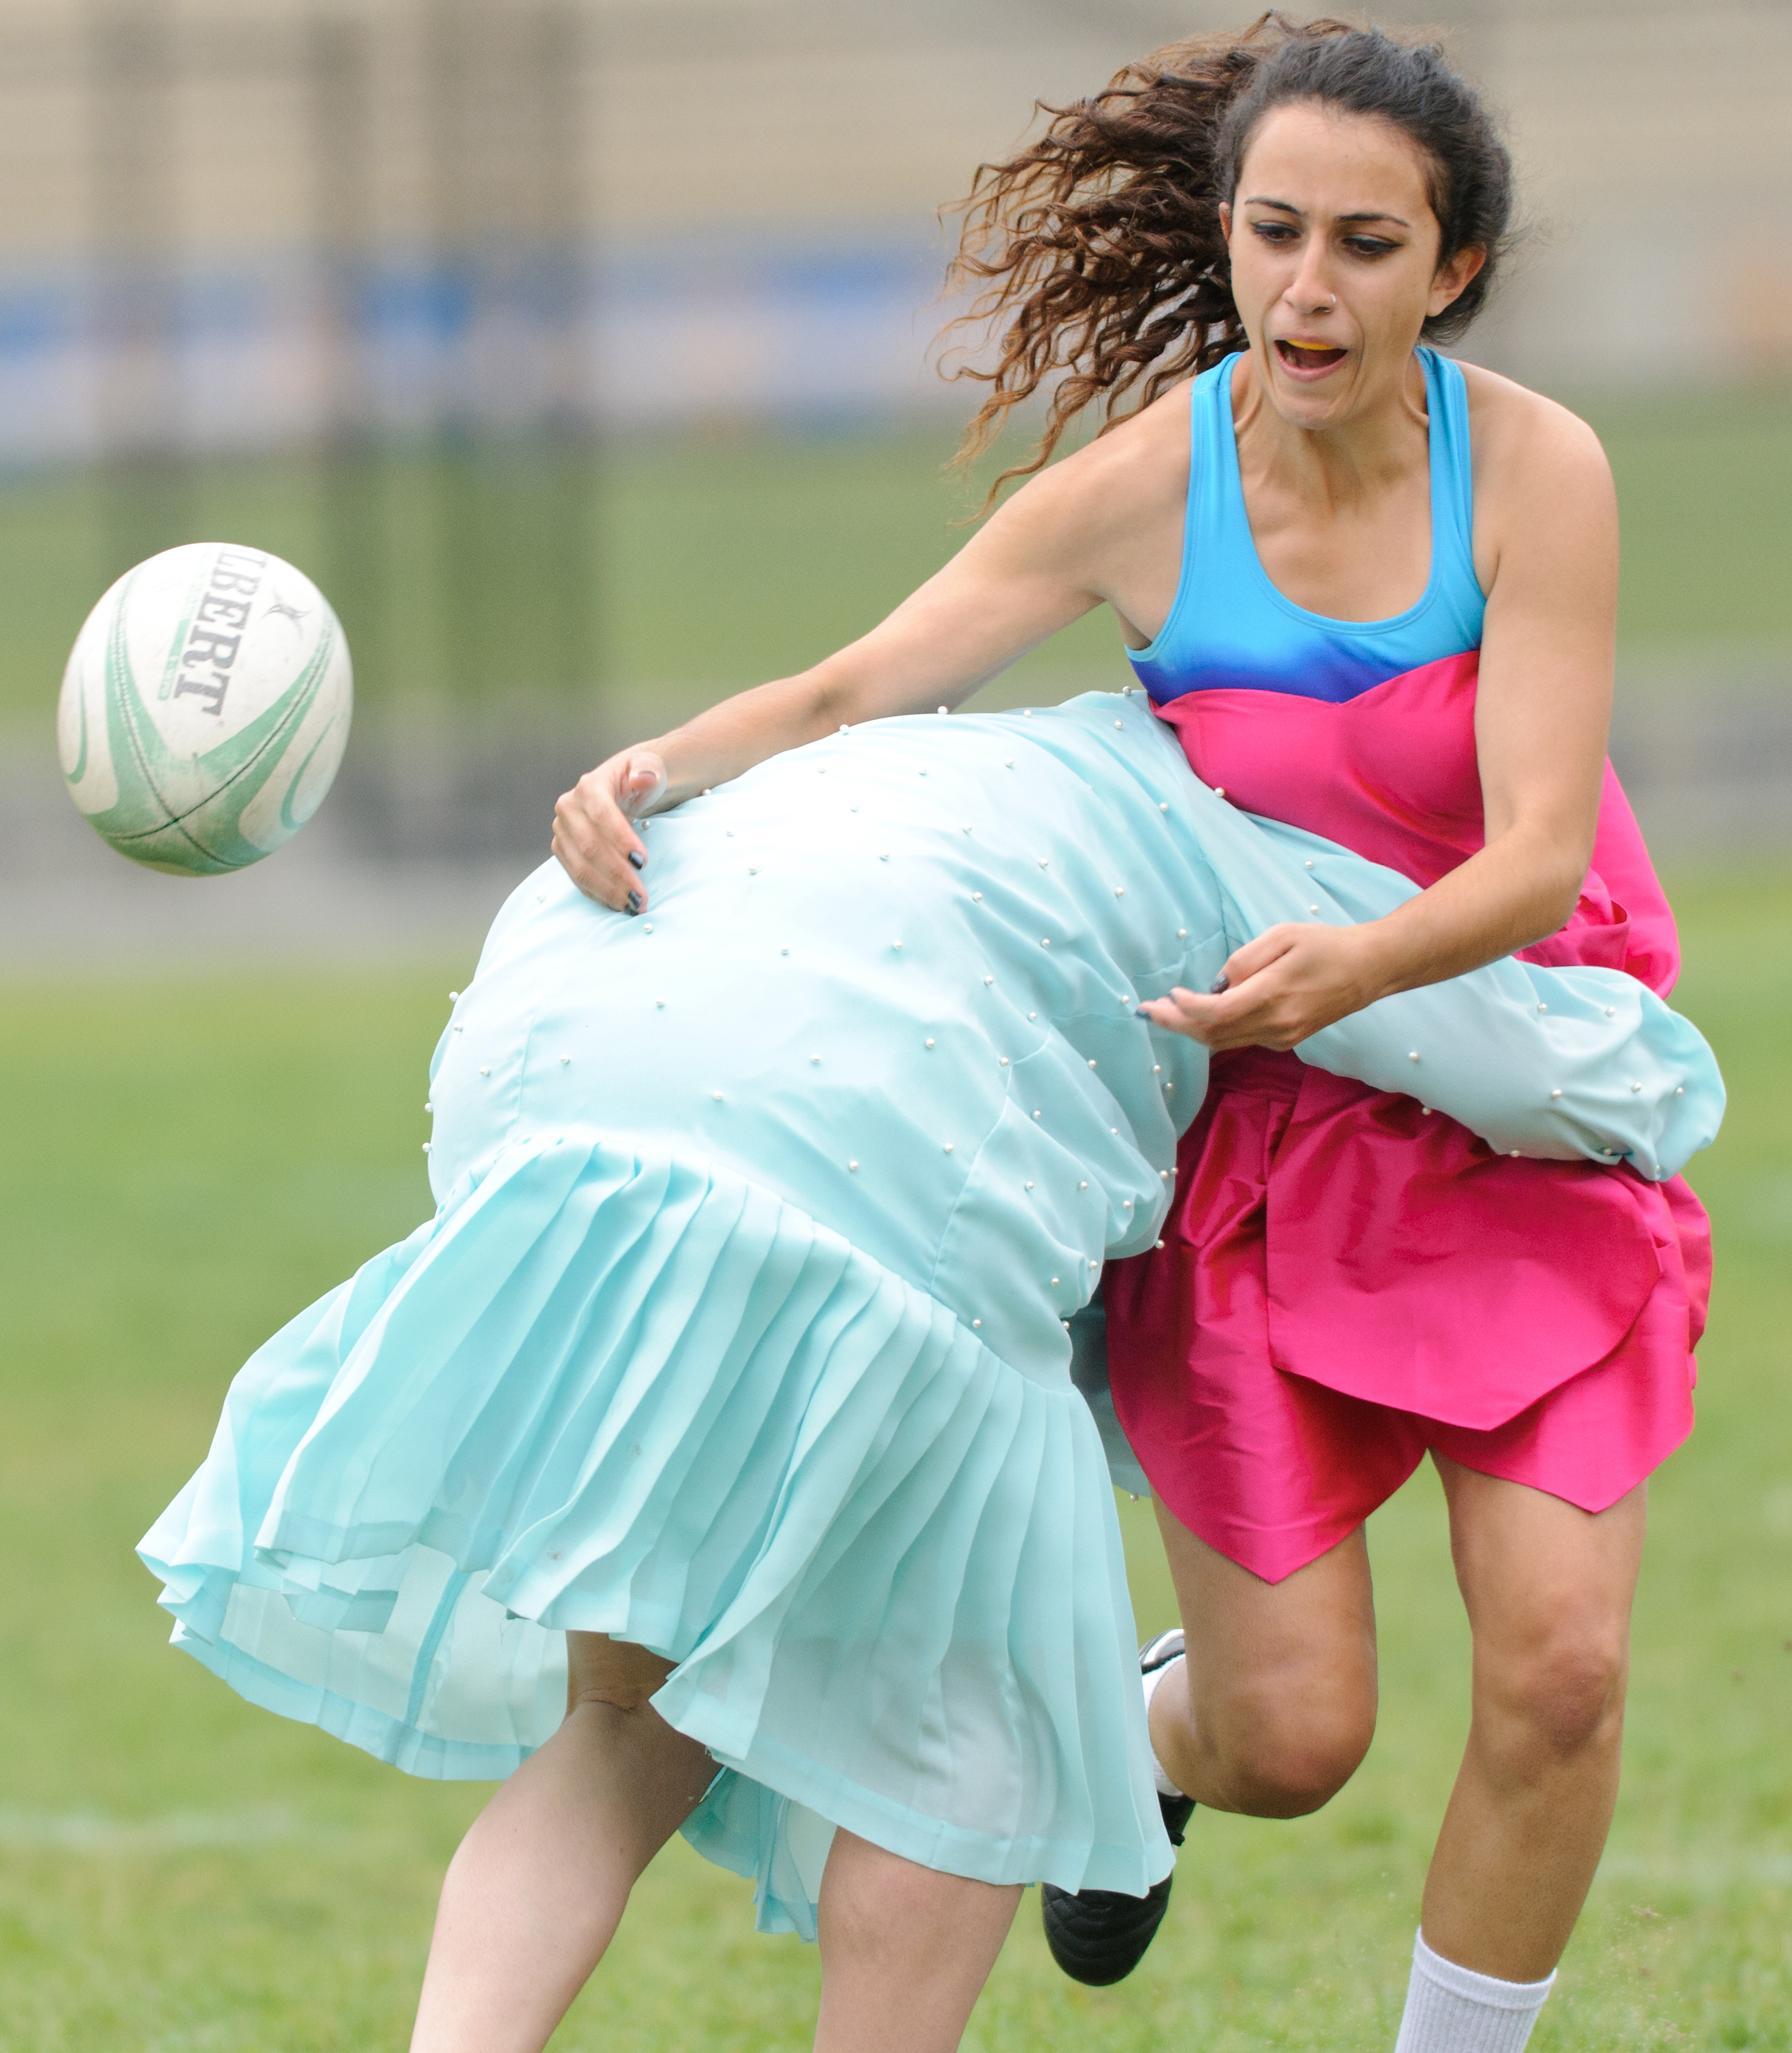 Mojo » When tackles meet frills: Prom dress rugby at UCLA